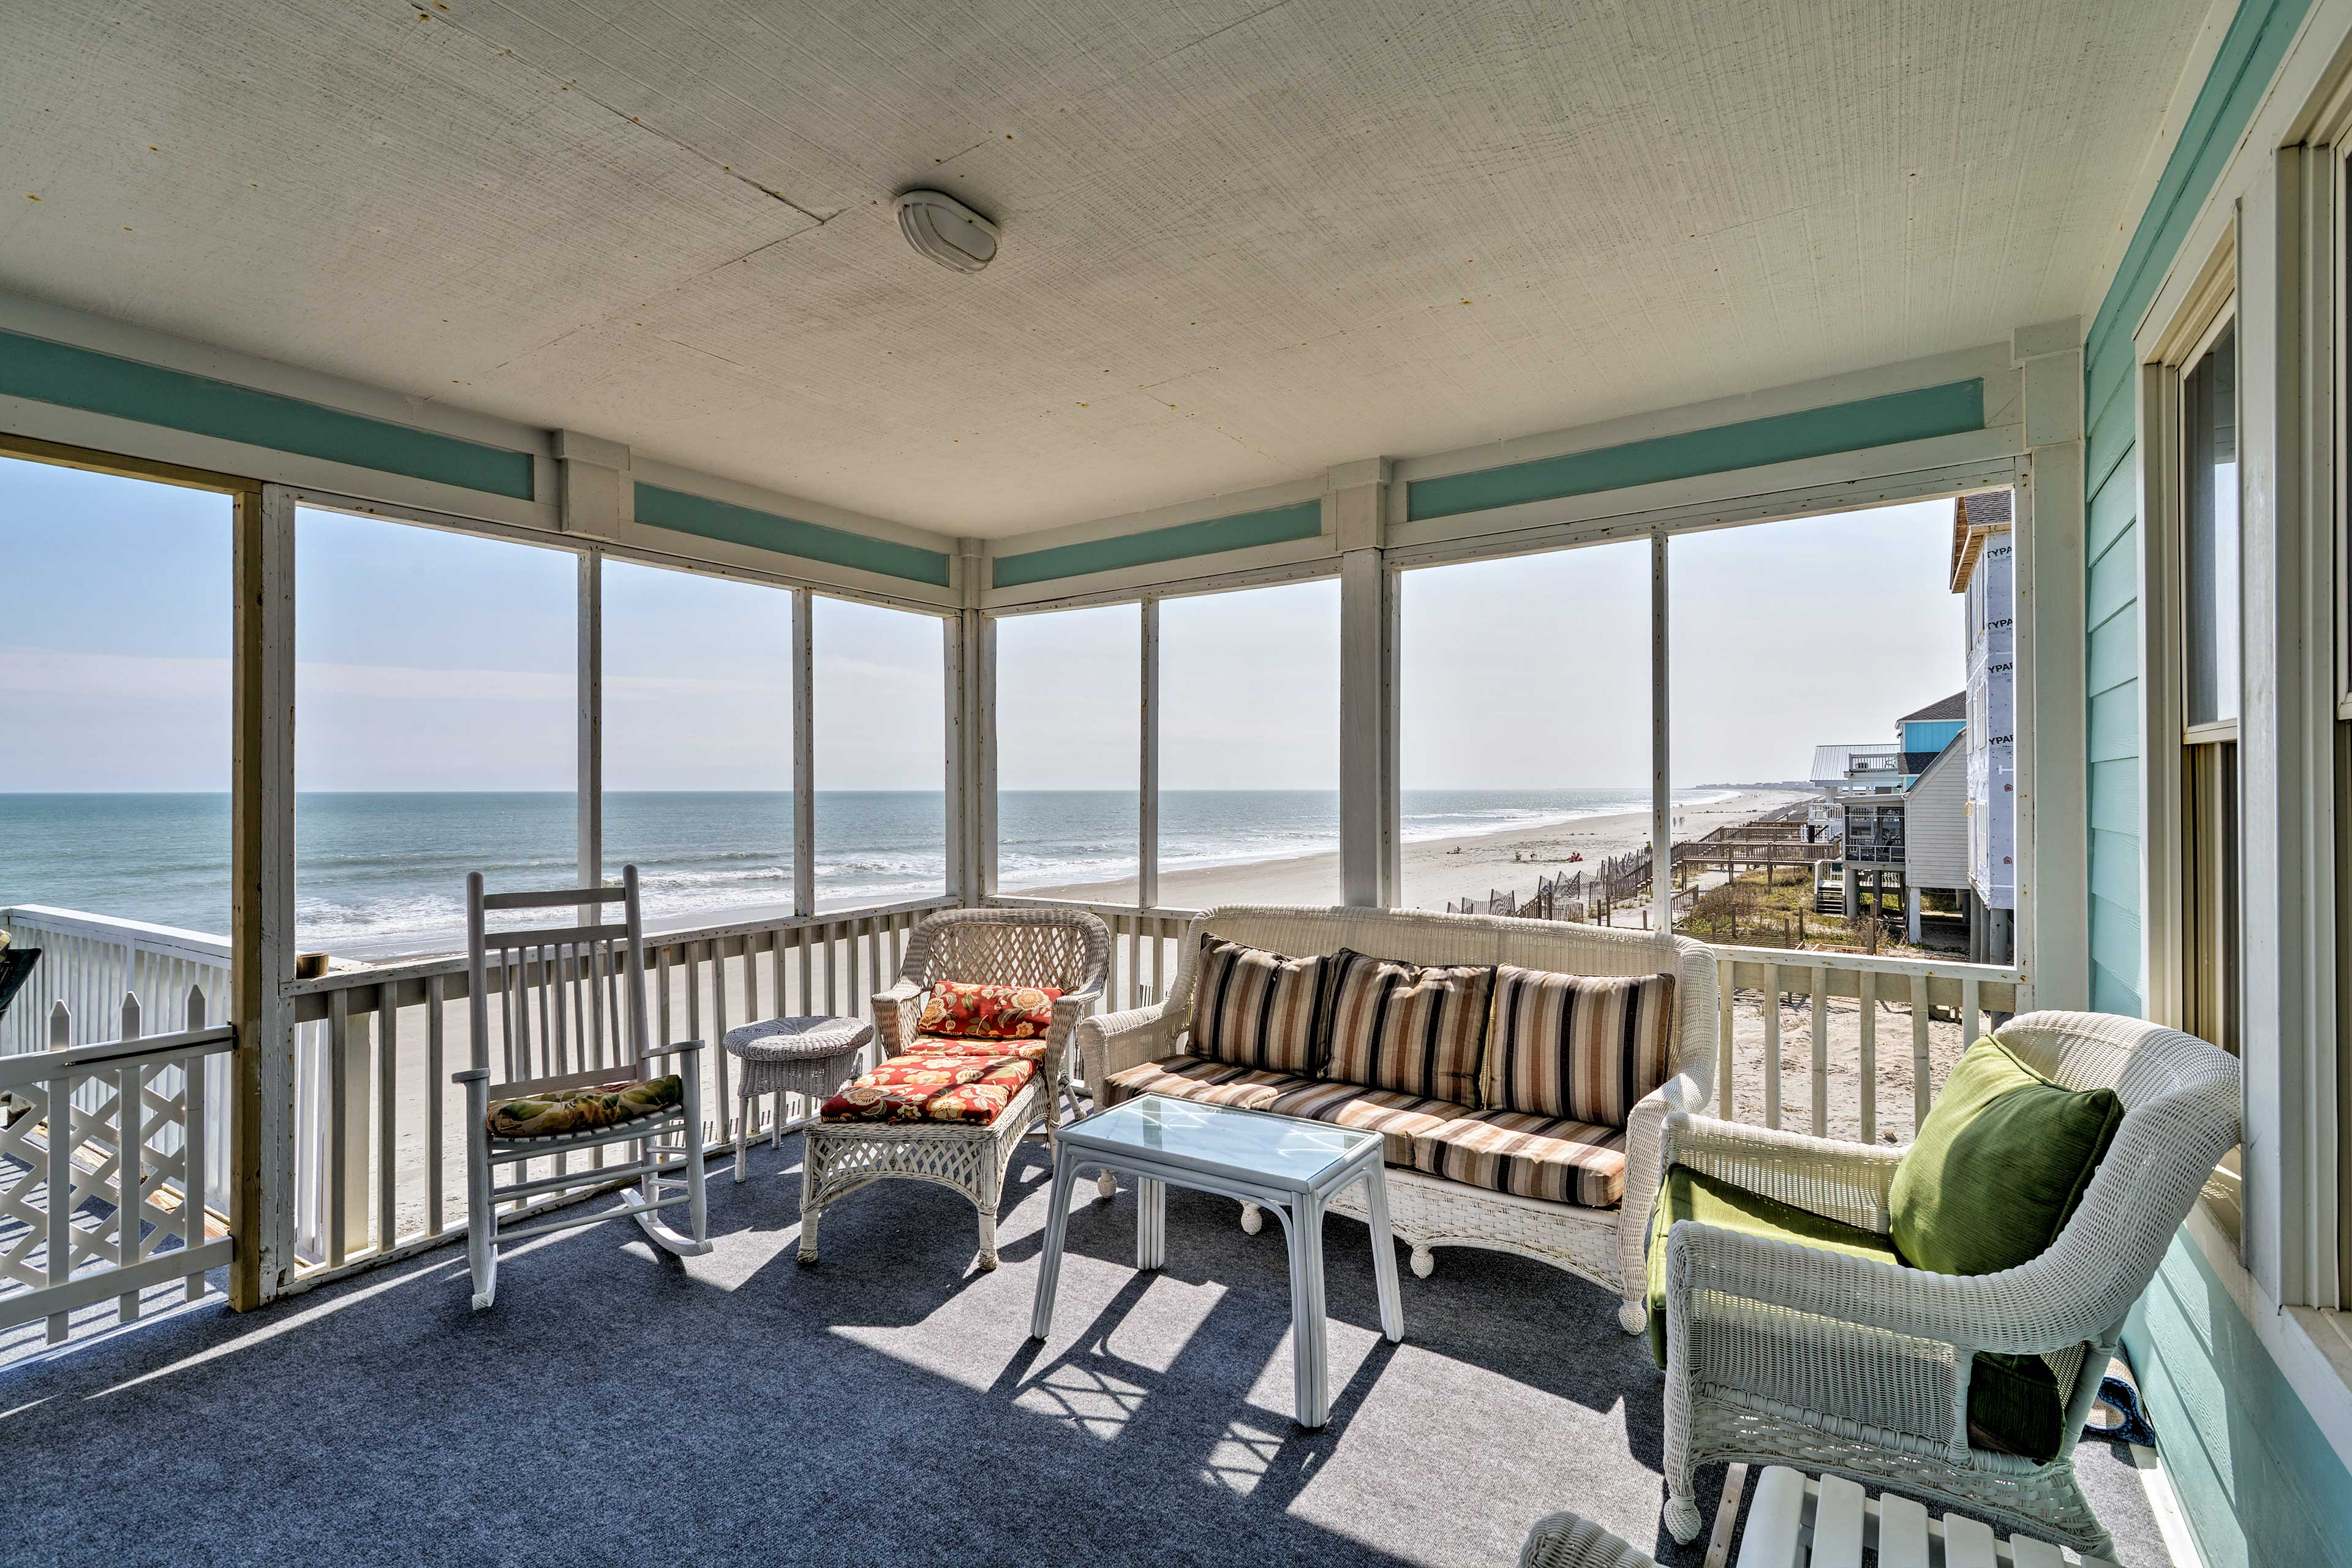 Murrells Inlet Vacation Rental   2-Story Home   6BR   5BA   3,200 Sq Ft